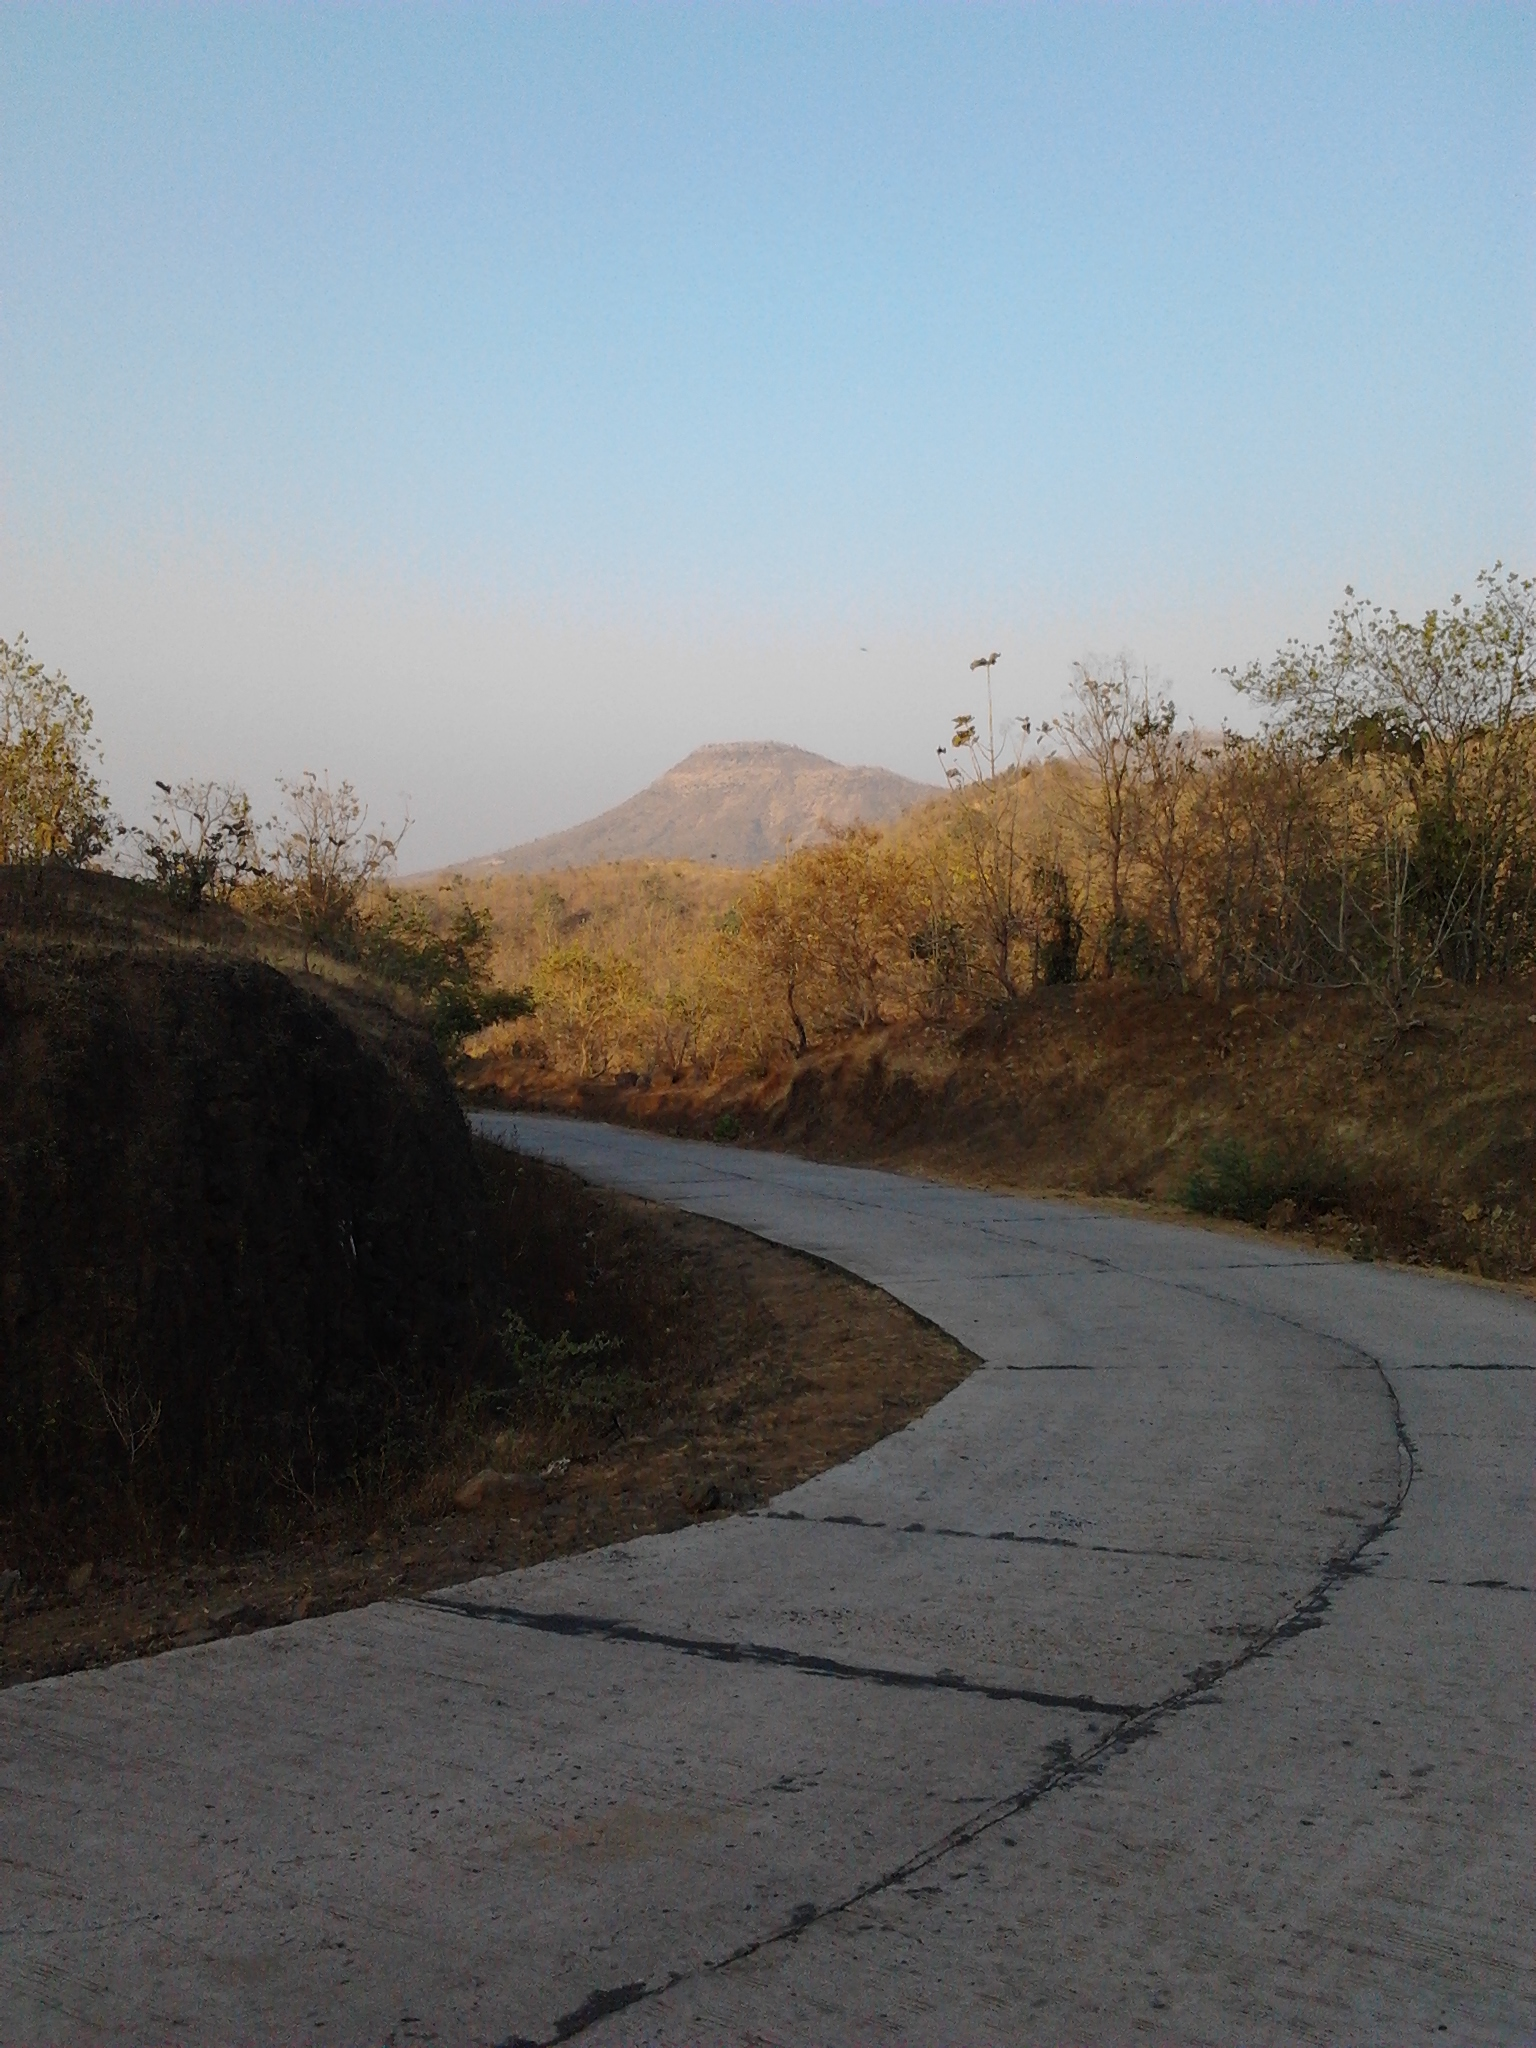 The Road to Mandu